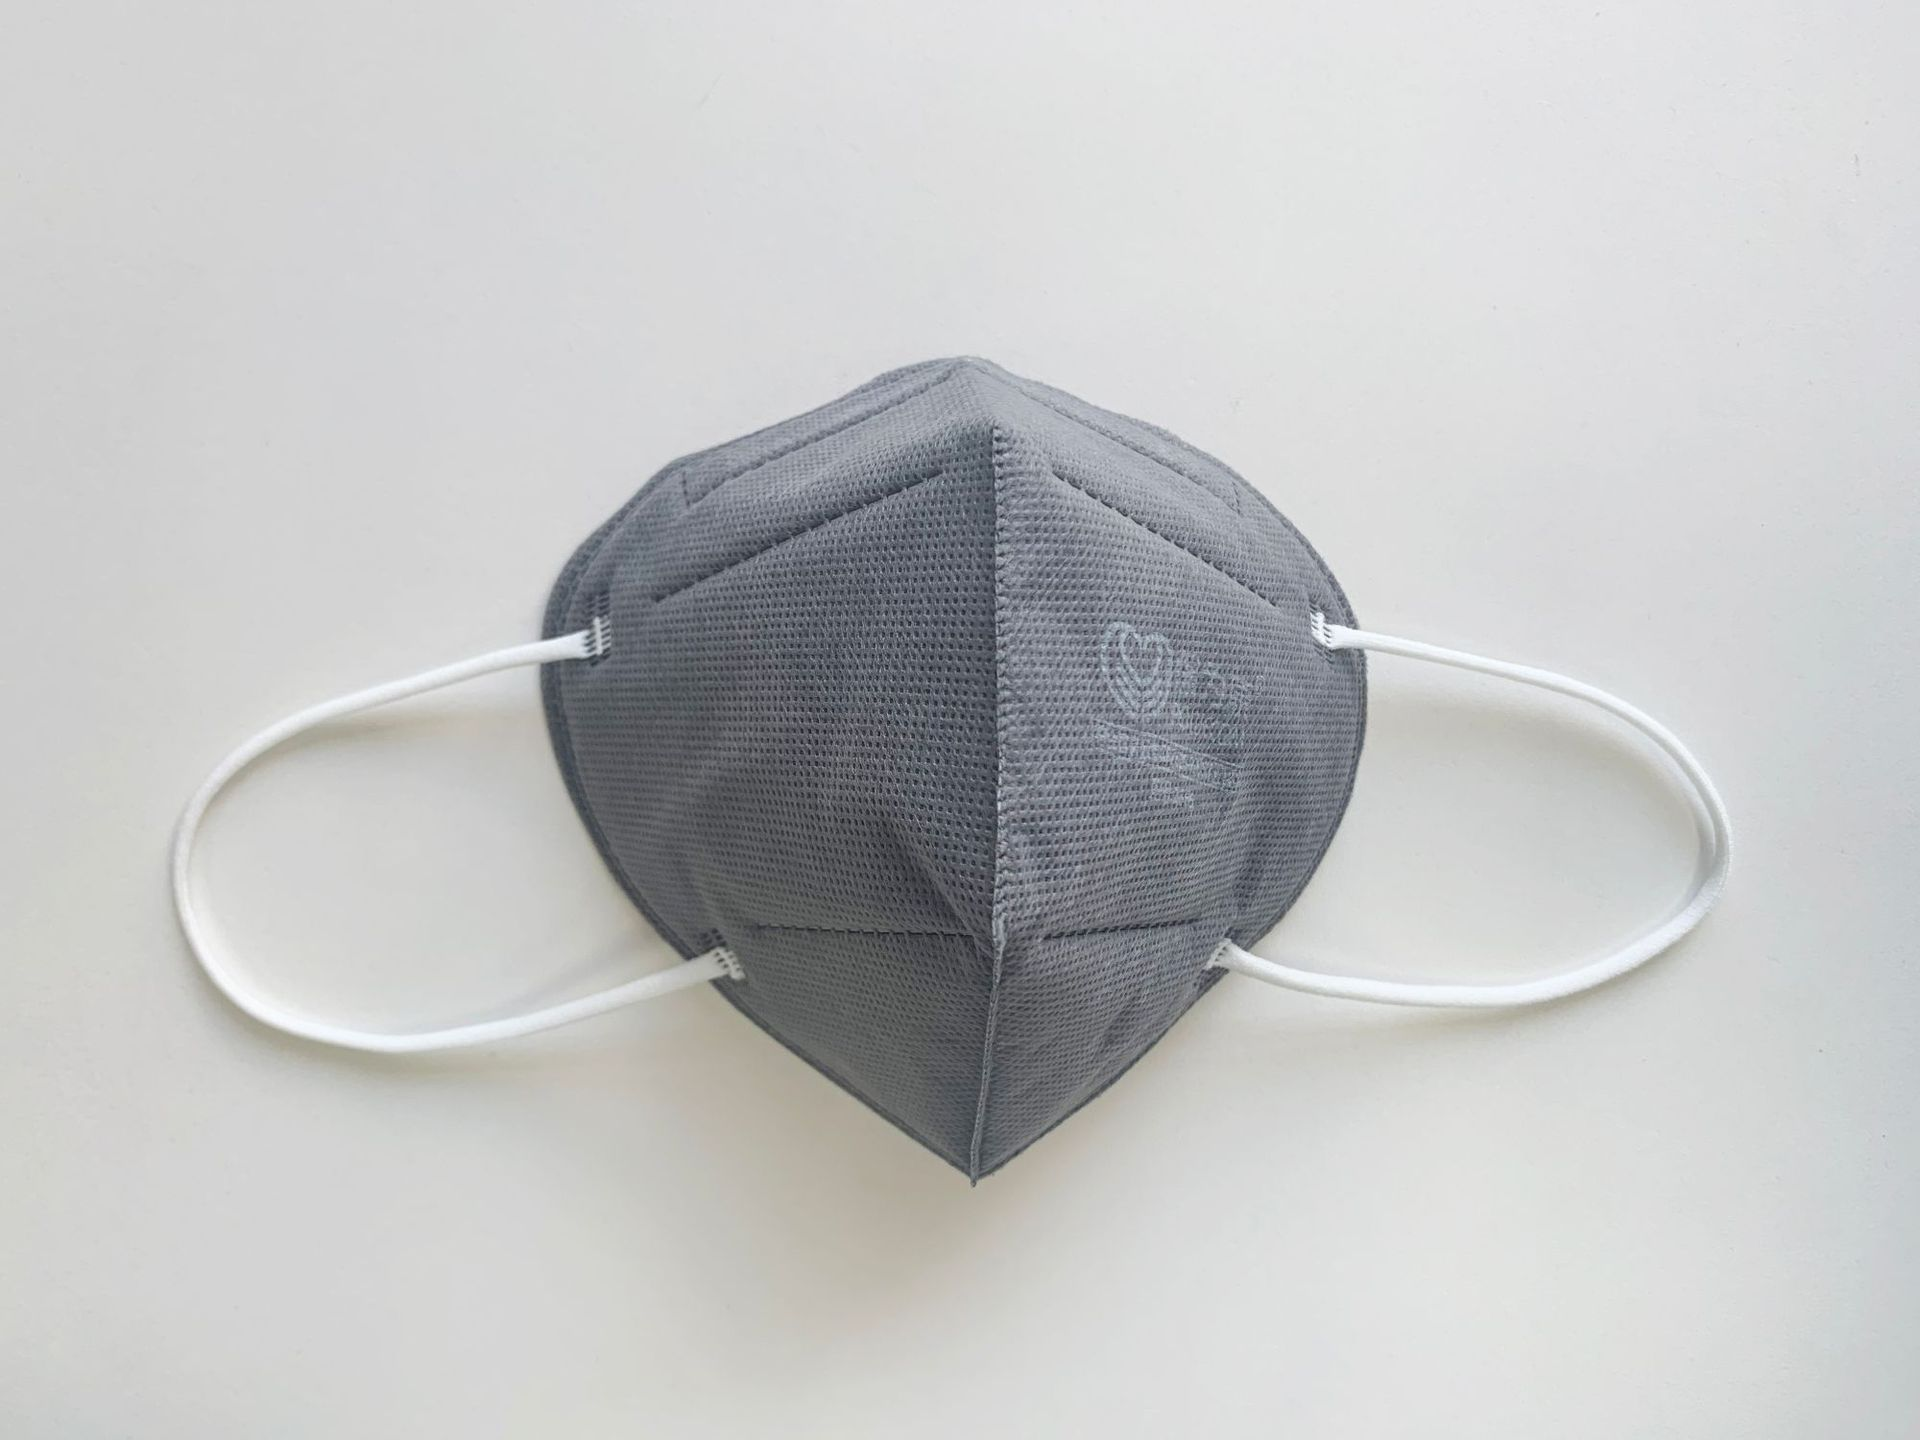 POWECOM 1866 Foldable KN95 Activated Carbon Mask Anti-odor and Oily Fume Industrial Dust Mask 60Pcs 1